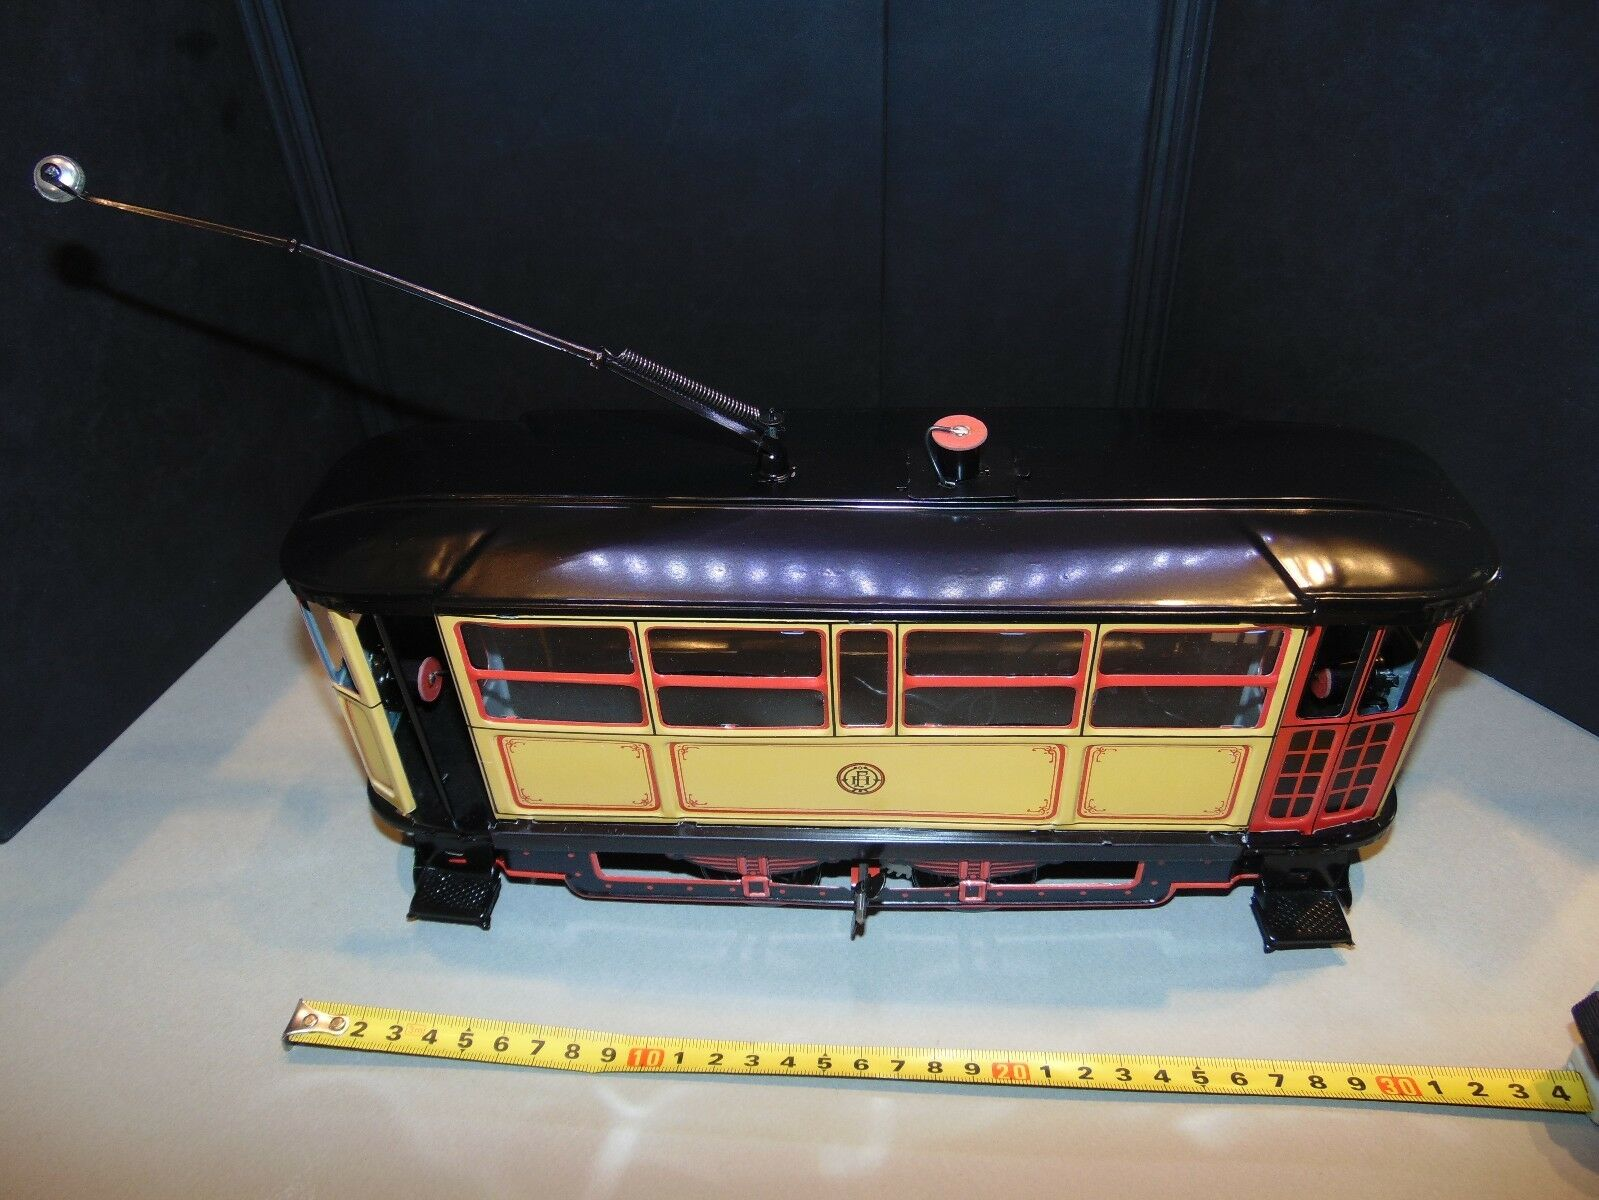 VINTAGE 1923 TRAM TRAM TRAM LITHOGRAPHY TIN TOY 1993 REPRO PAYA RARE LARGE SCALE eee0d1